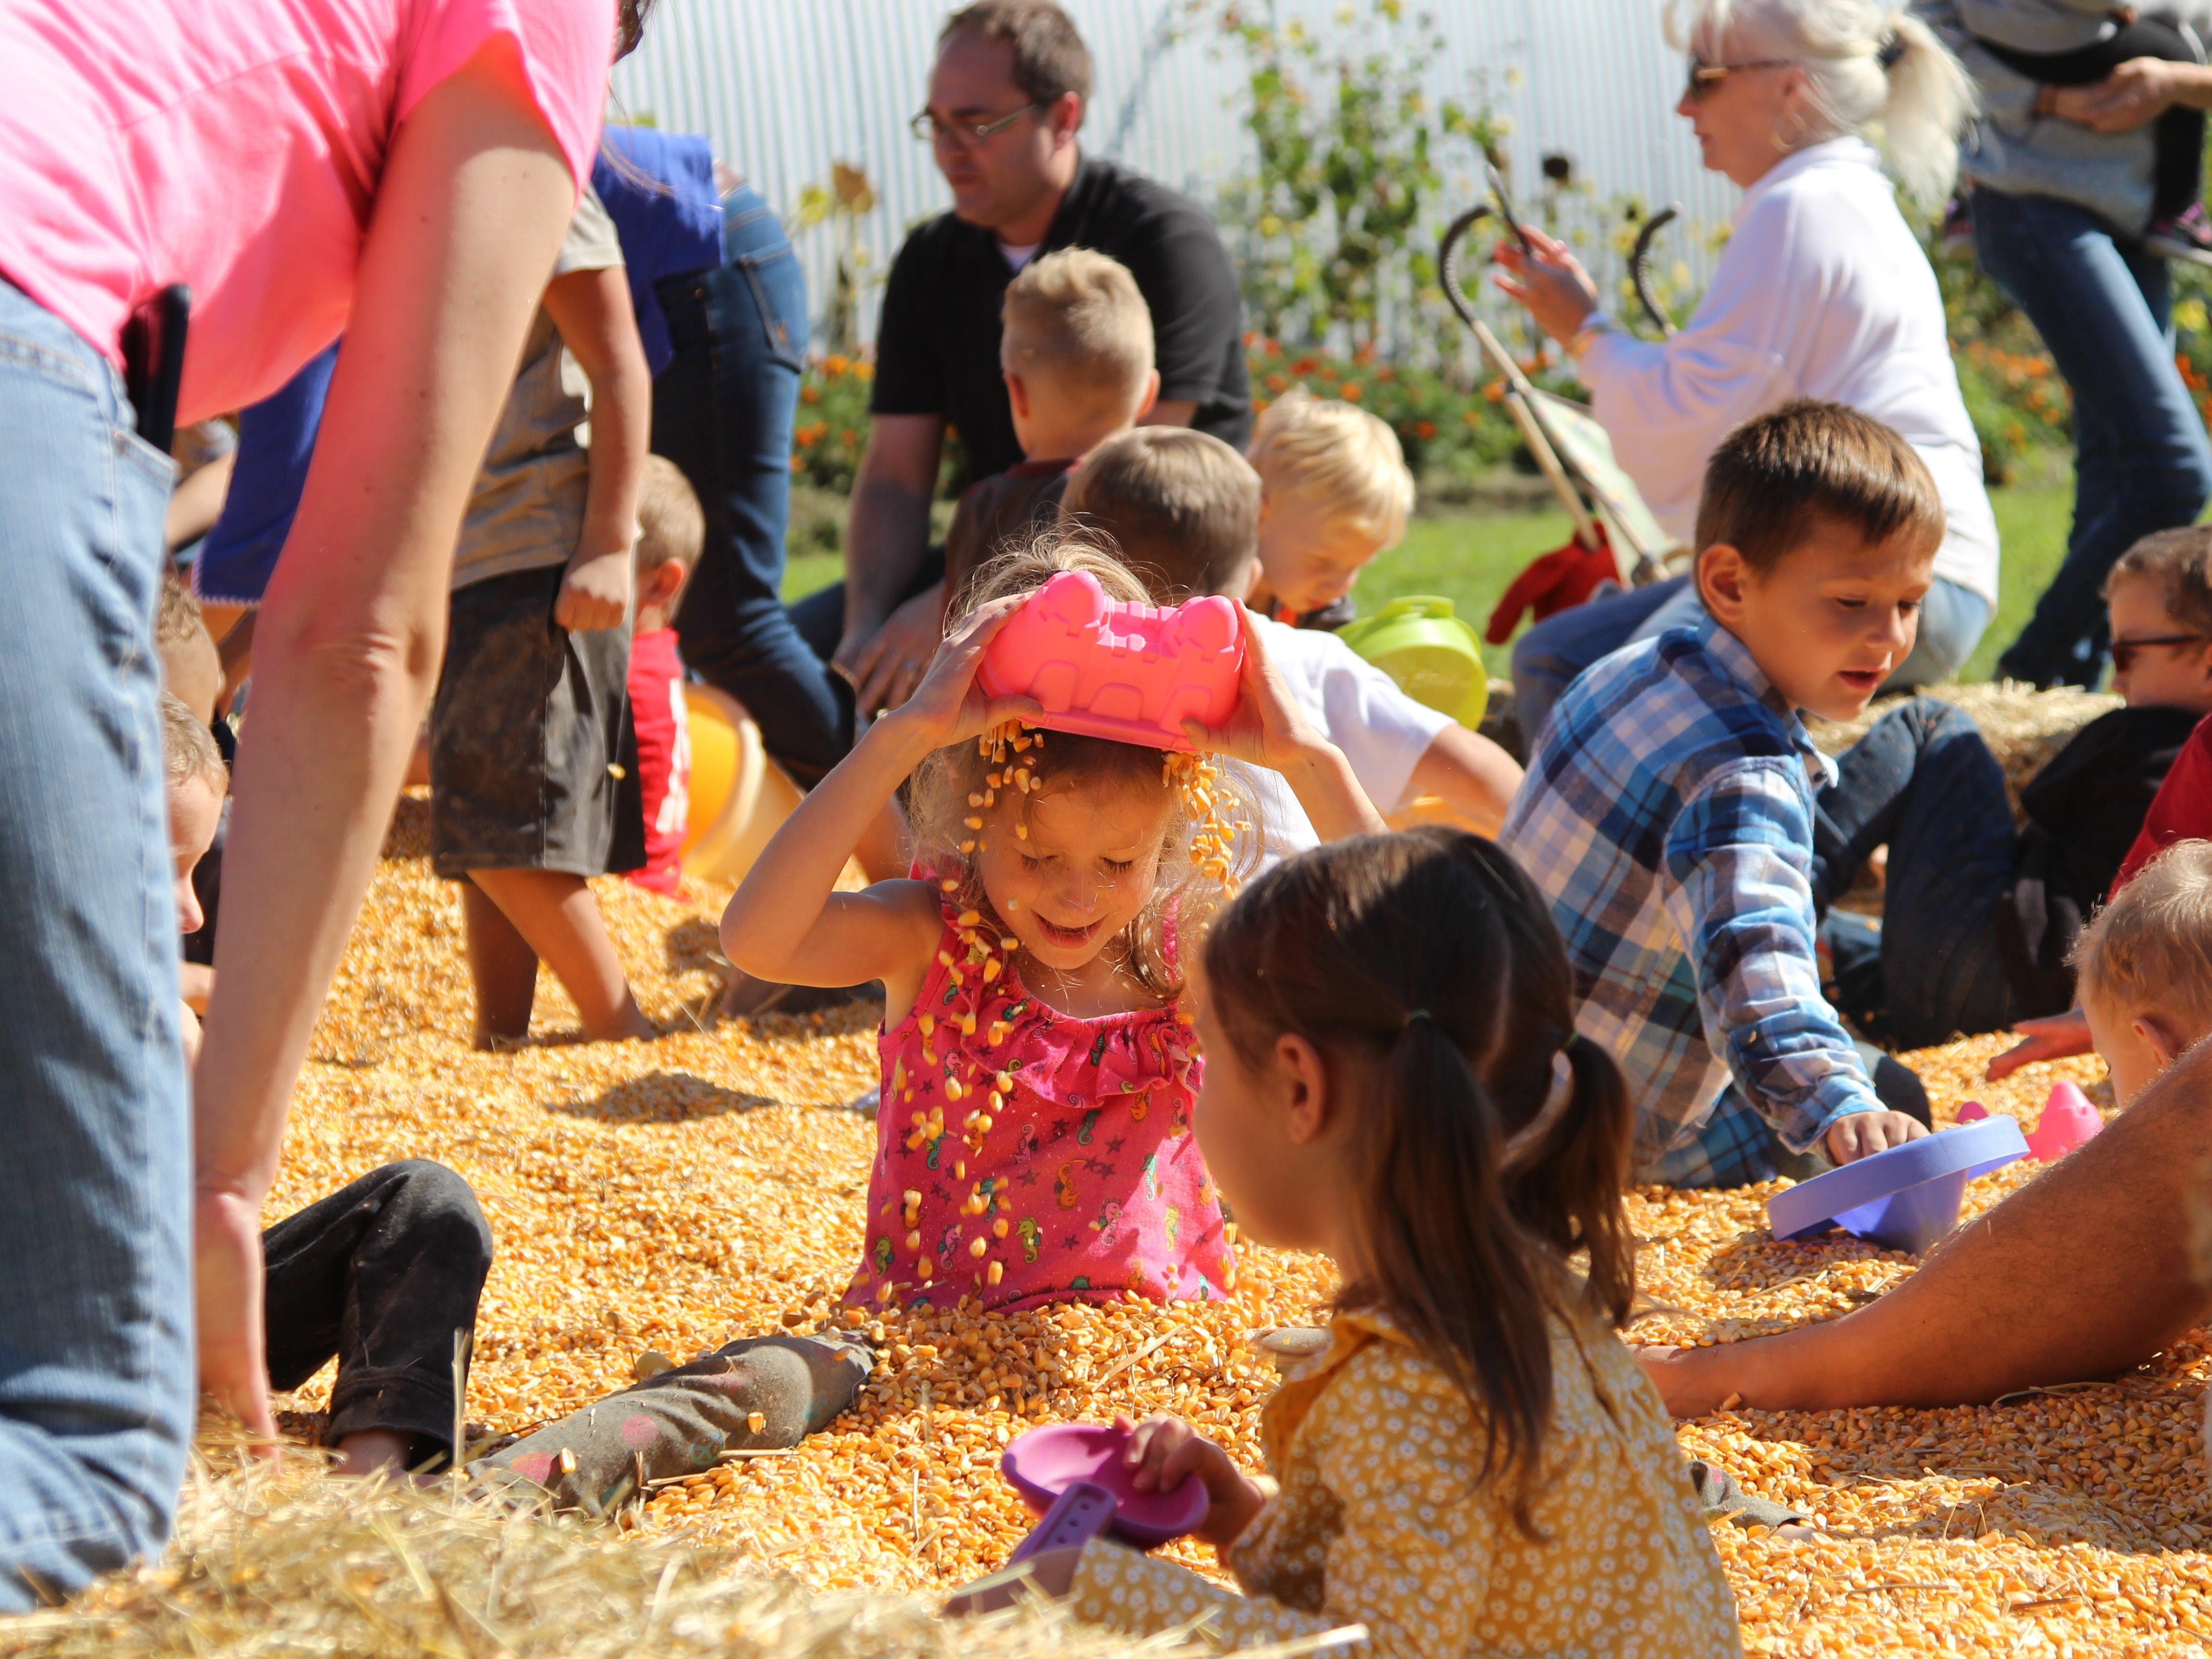 """Mary Lynn Martindell, 6, pours corn kernels over herself in the """"corn box"""" at Applefest, which took place Saturday at Lawrence Orchards."""